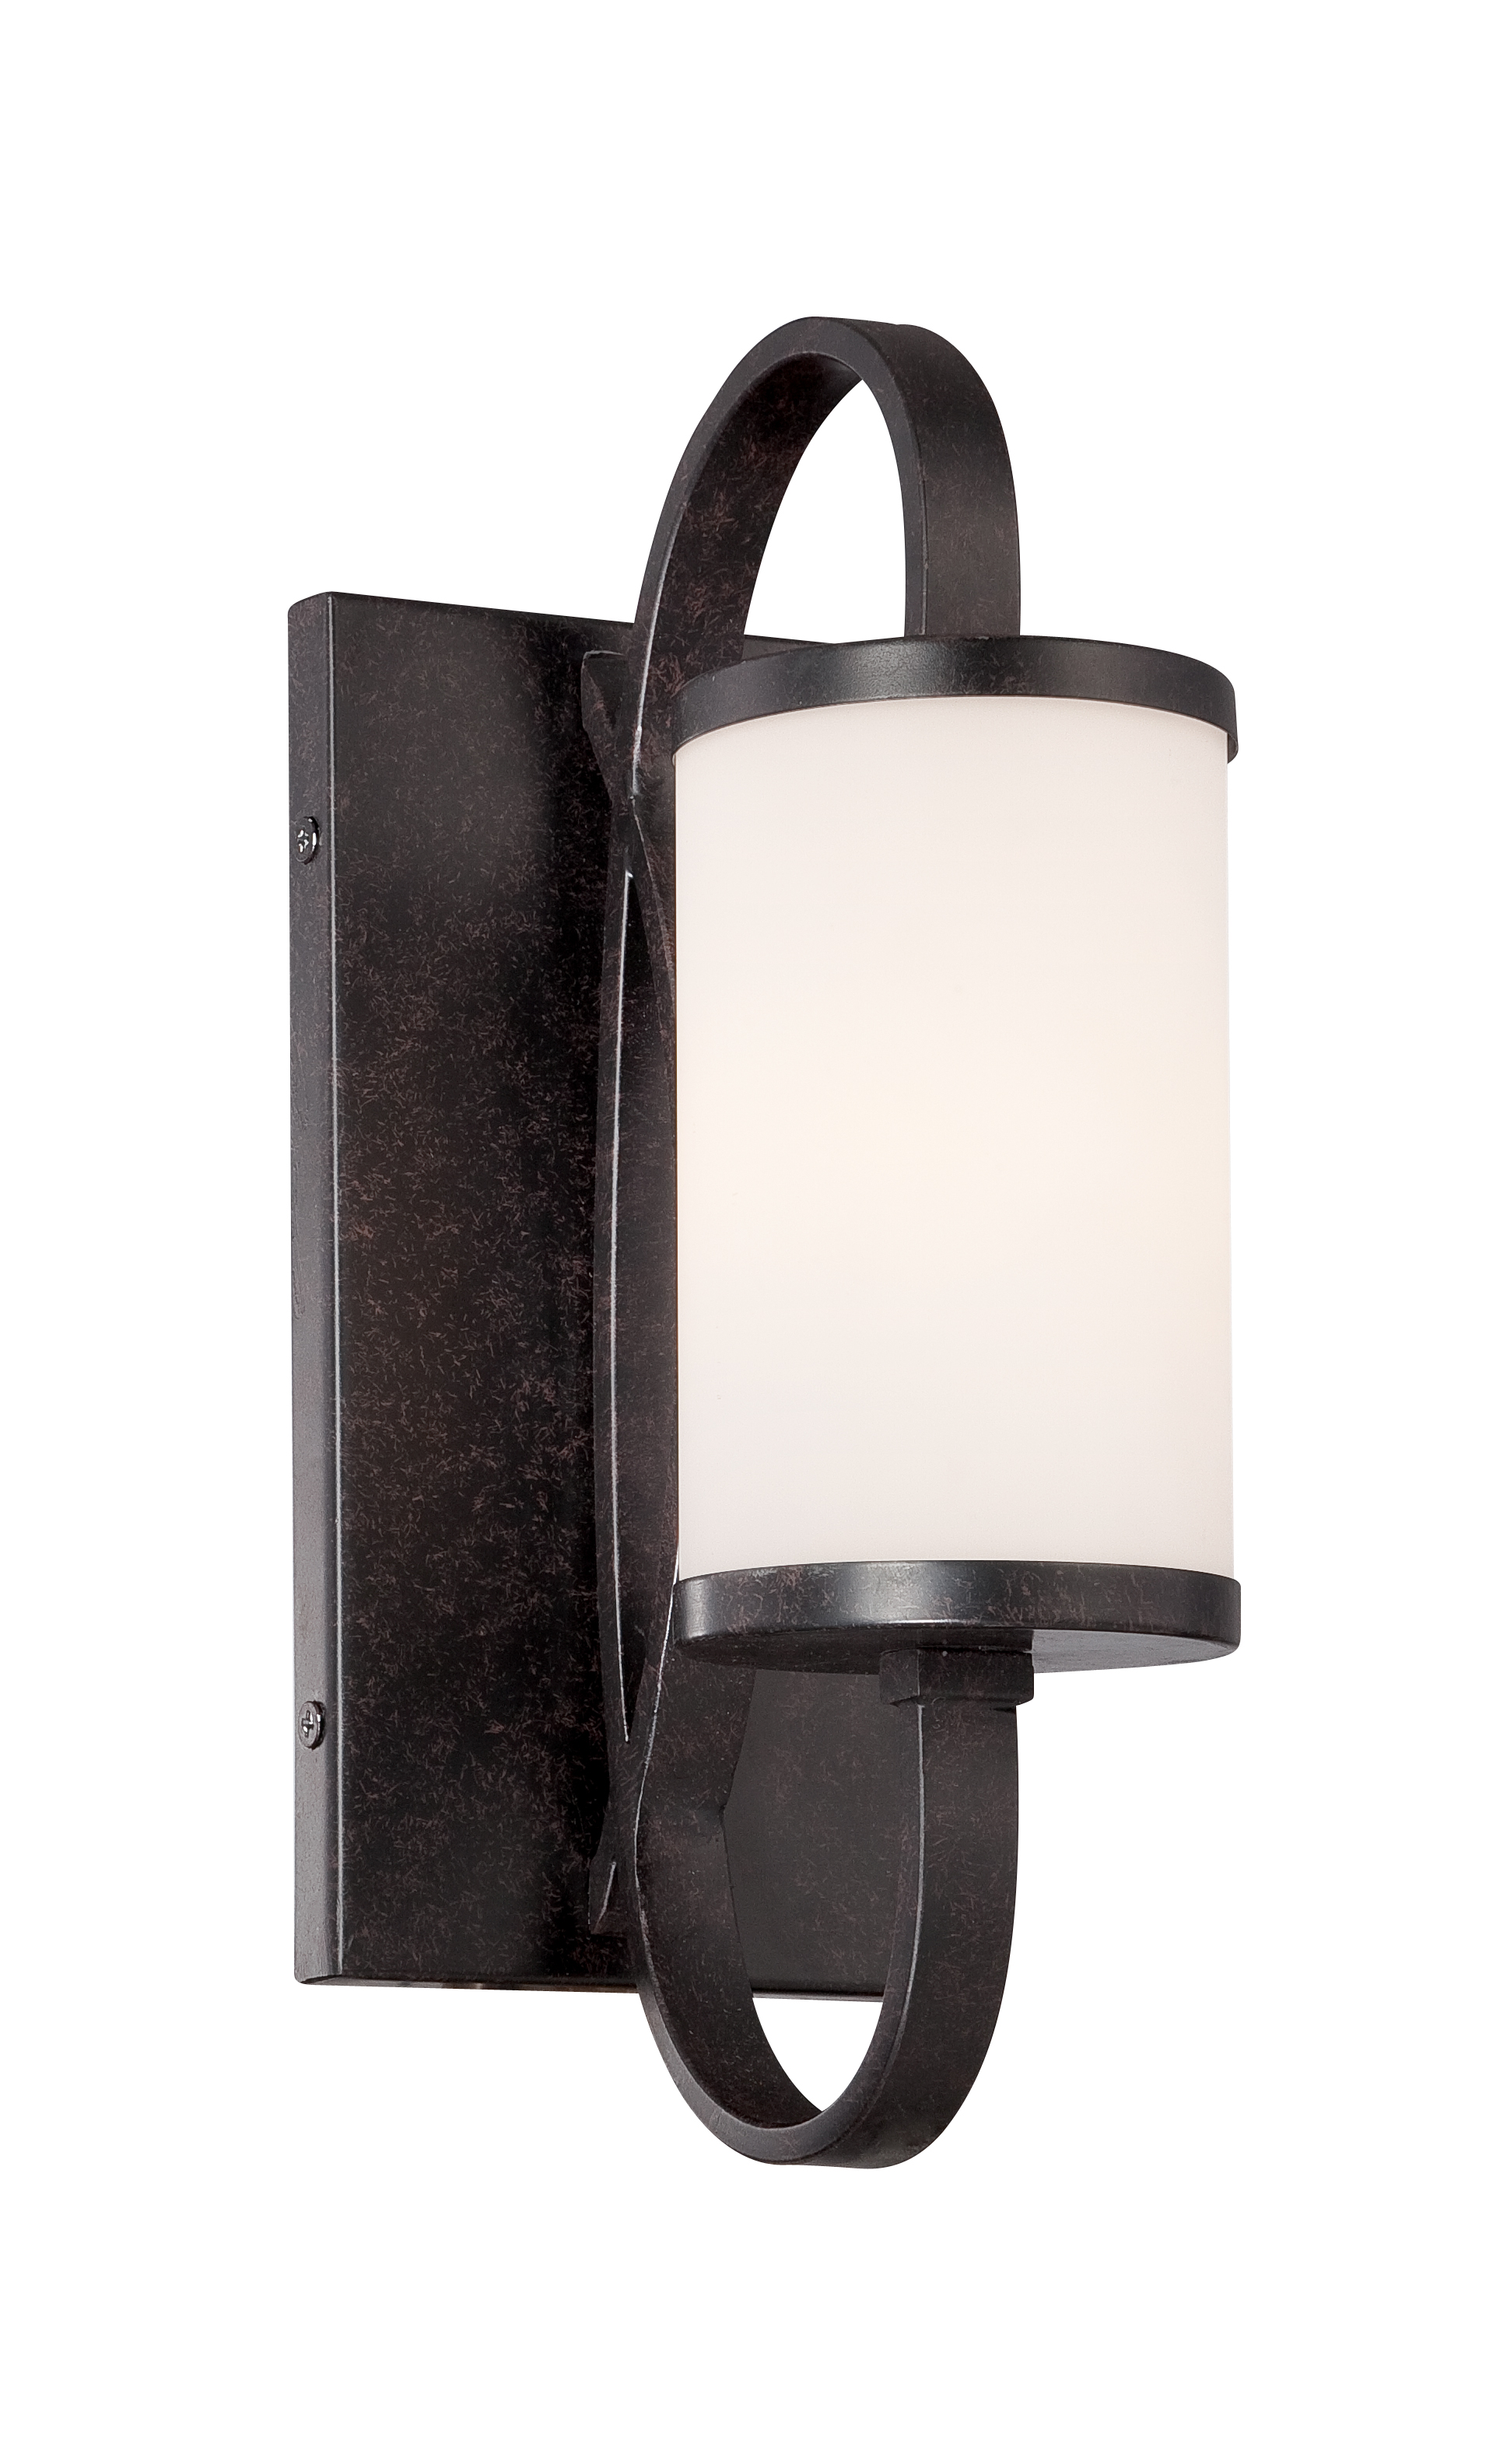 Designers Fountain Lighting Designers Fountain Artisan Bellemeade 1 Light Wall Sconce